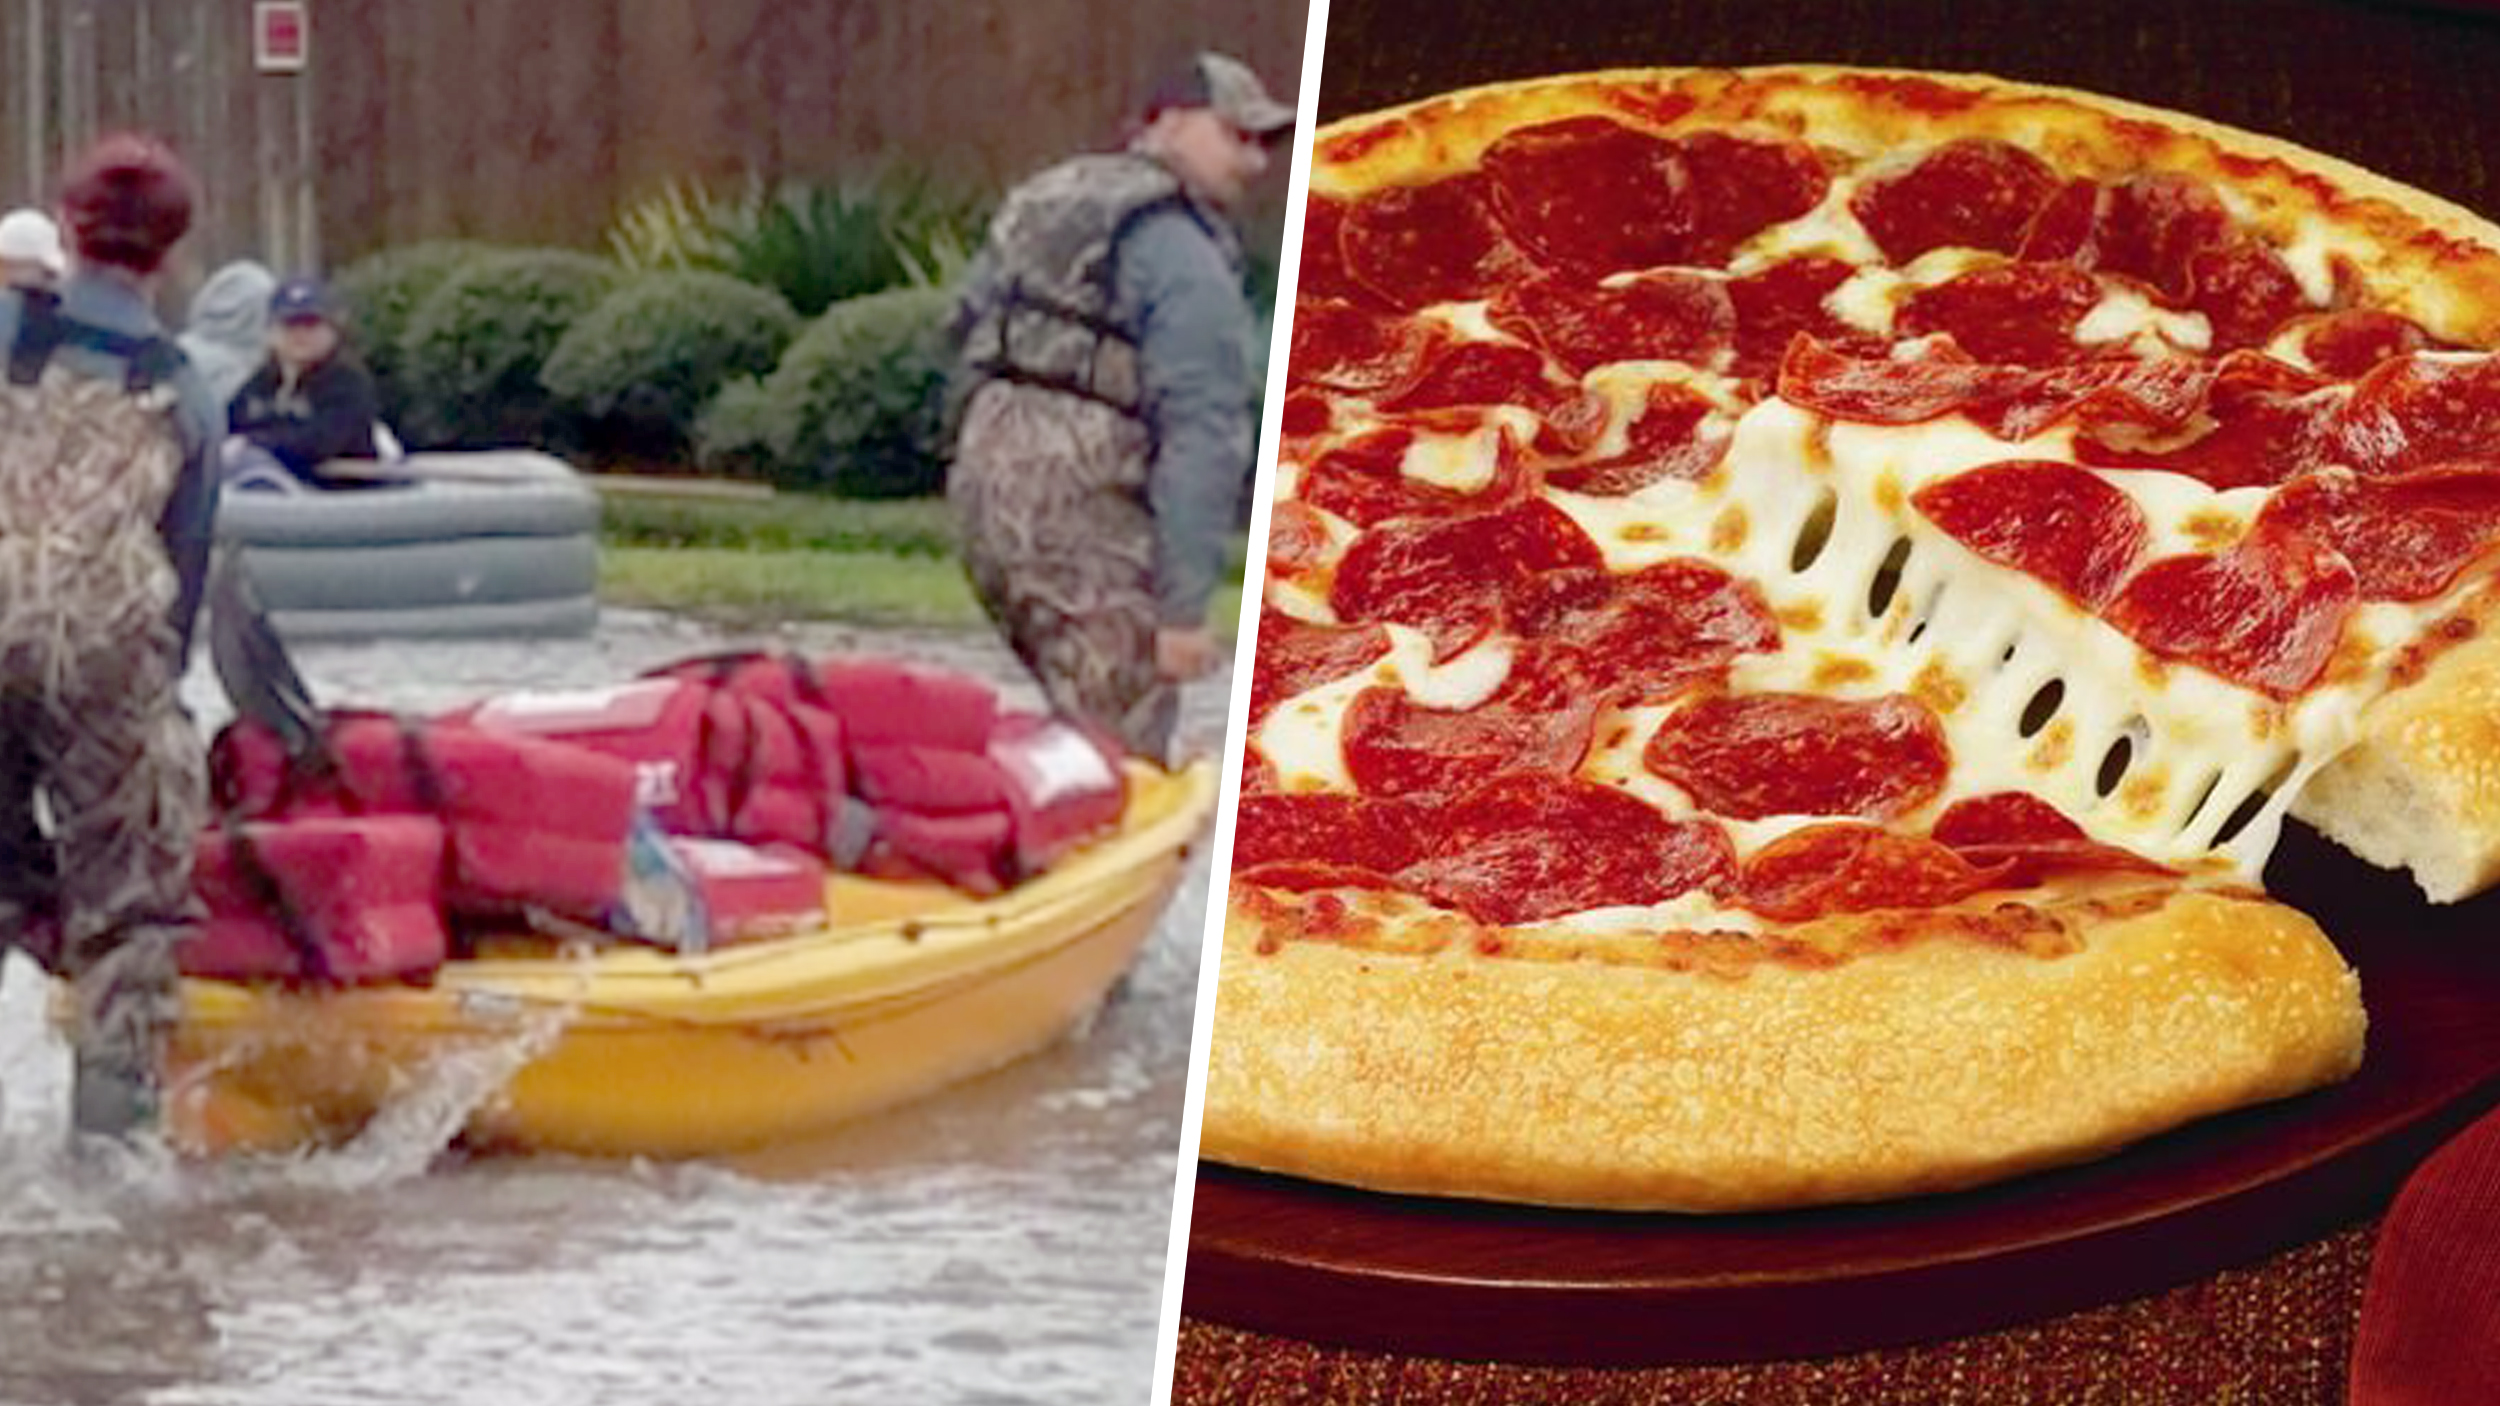 Dedicated delivery! How these Pizza Hut workers got food ...